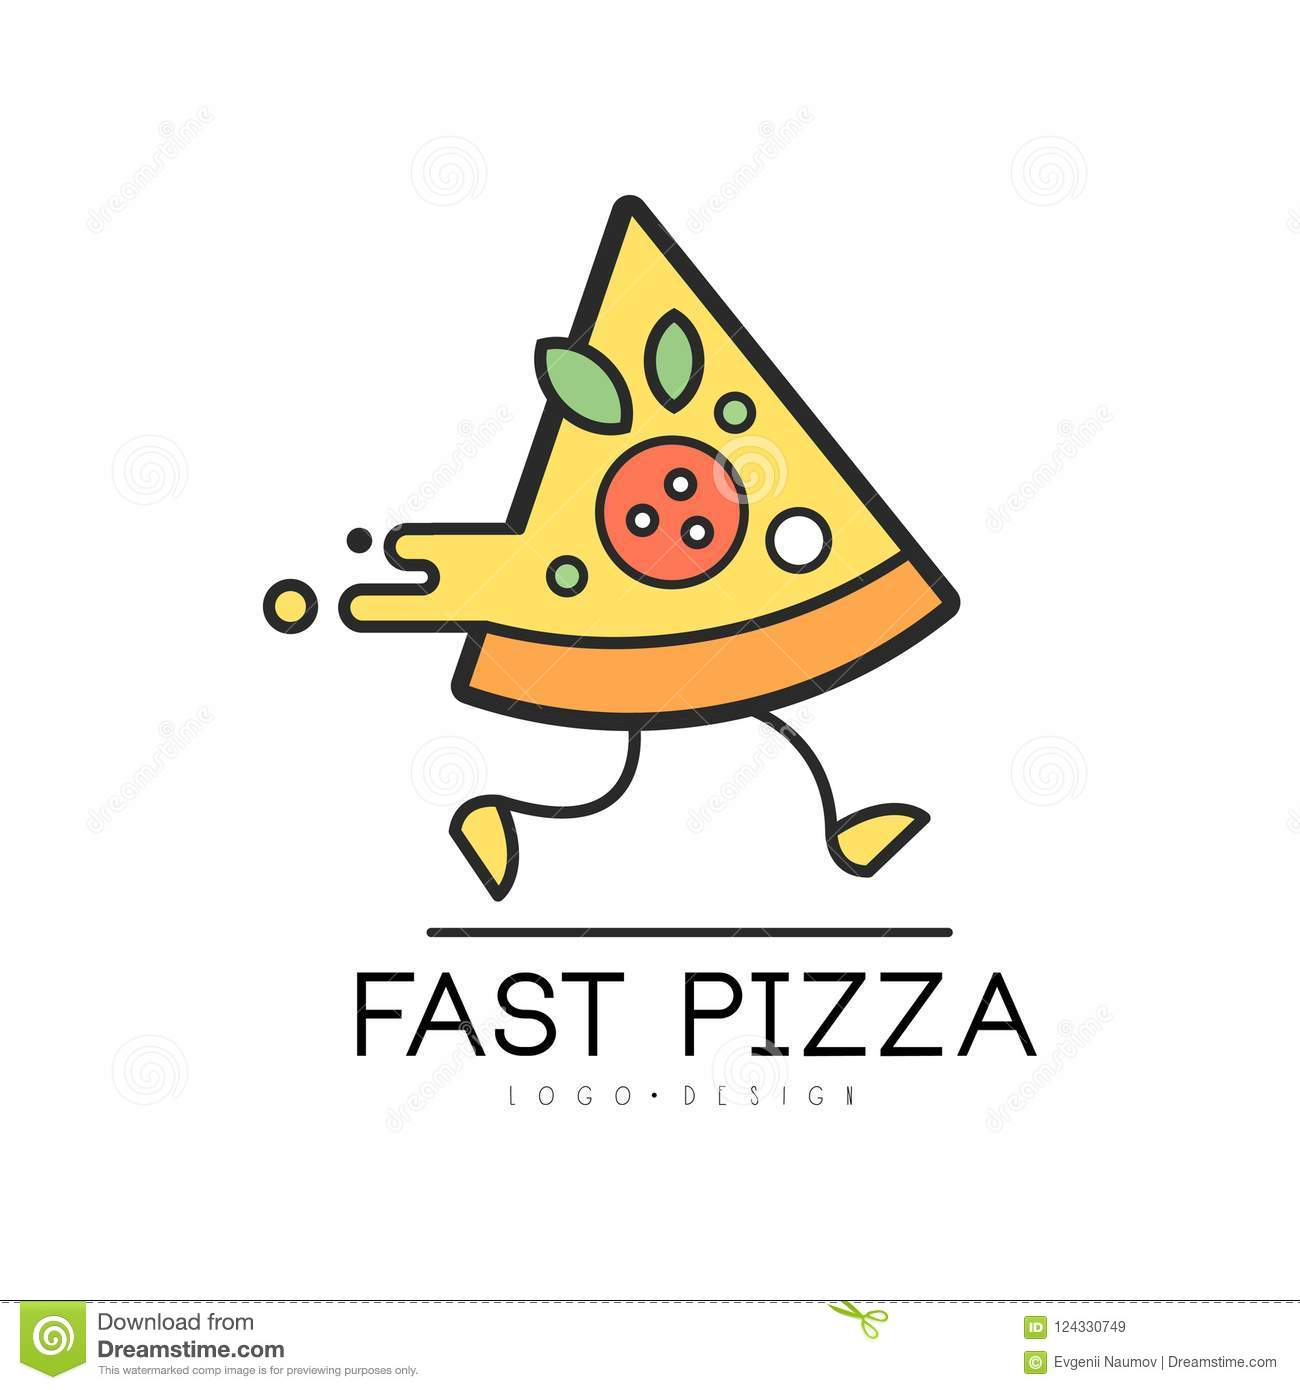 Fast Pizza Logo Design, Food Service Delivery, Creative Template ...